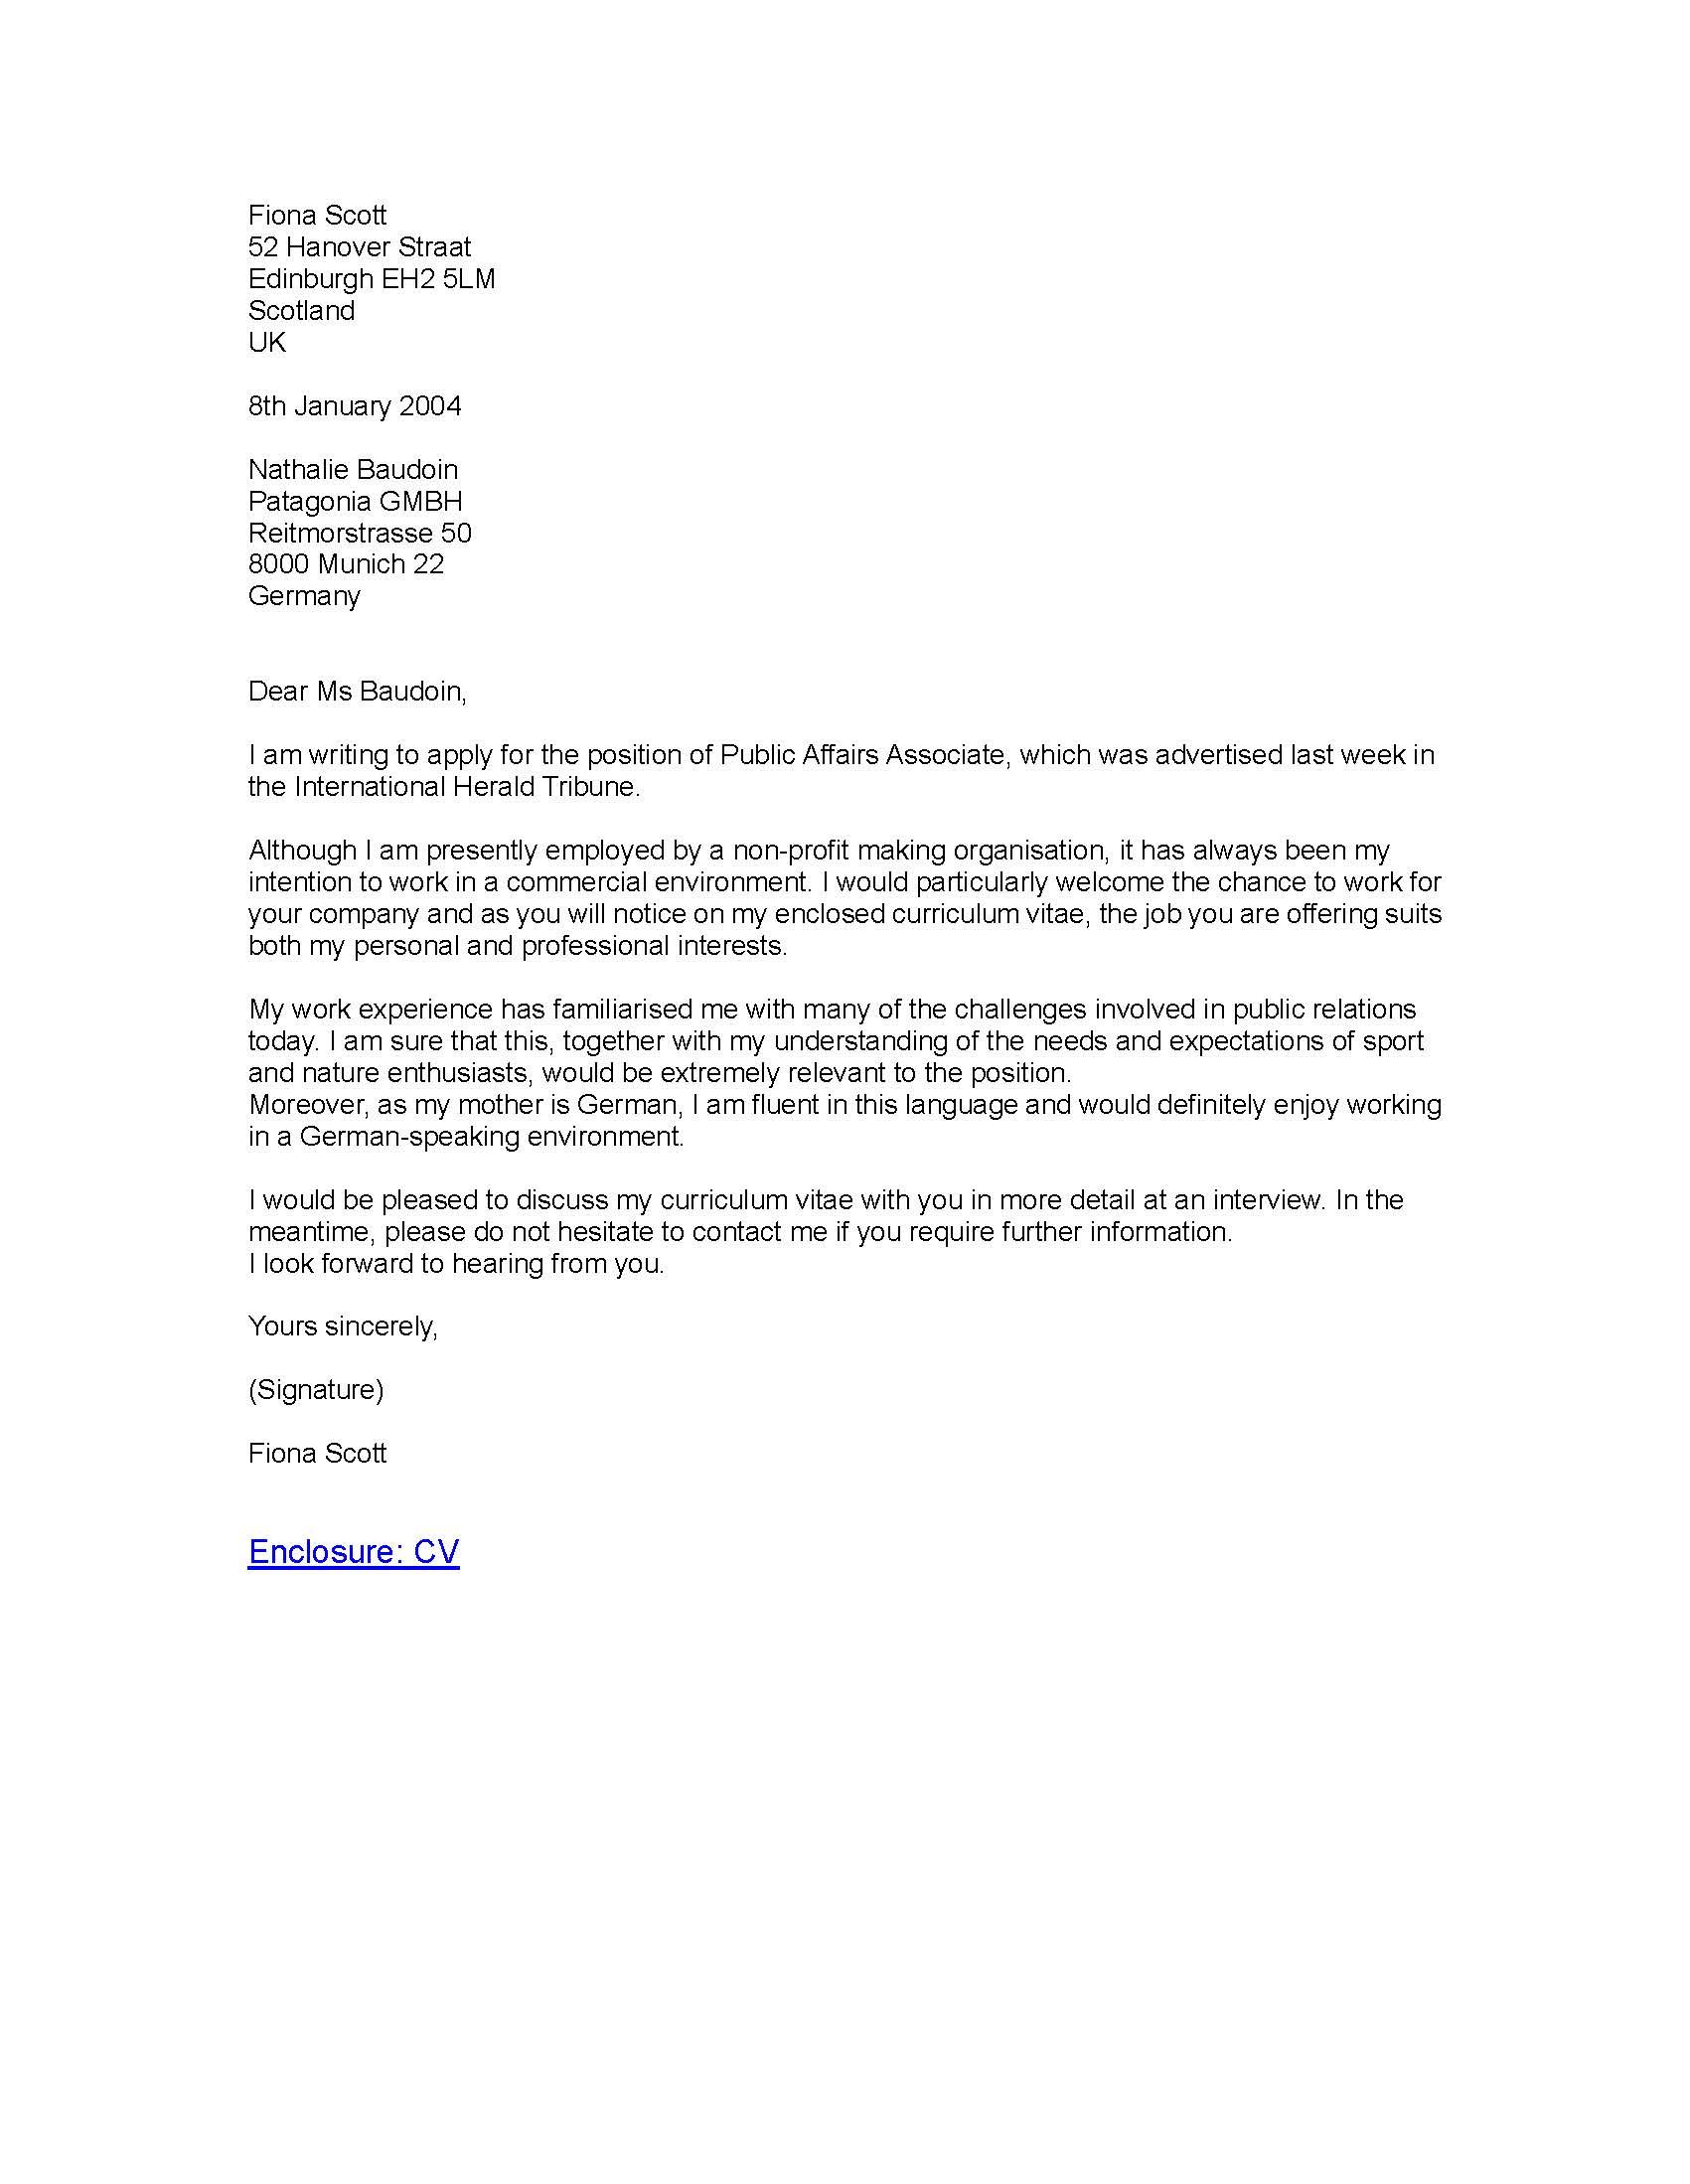 Formal Business Letter Applying For A Job | Business English ...